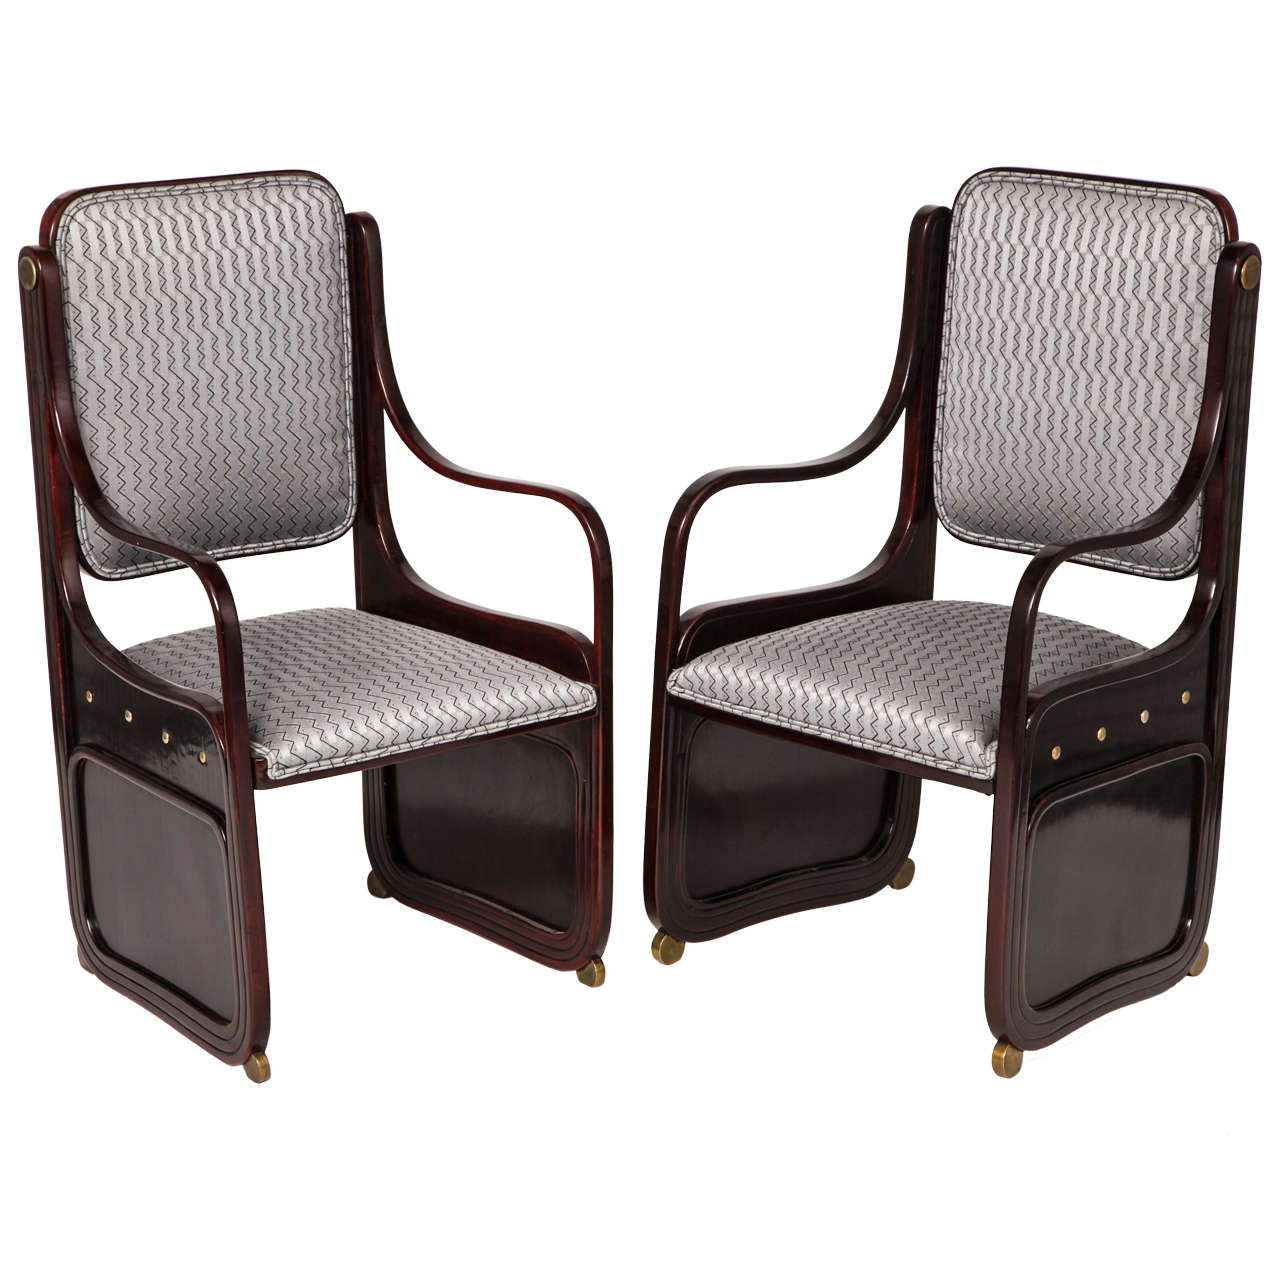 Koloman Moser Pair Of Armchairs Jacob And Josef Kohn 1901 For Sale At 1stdibs